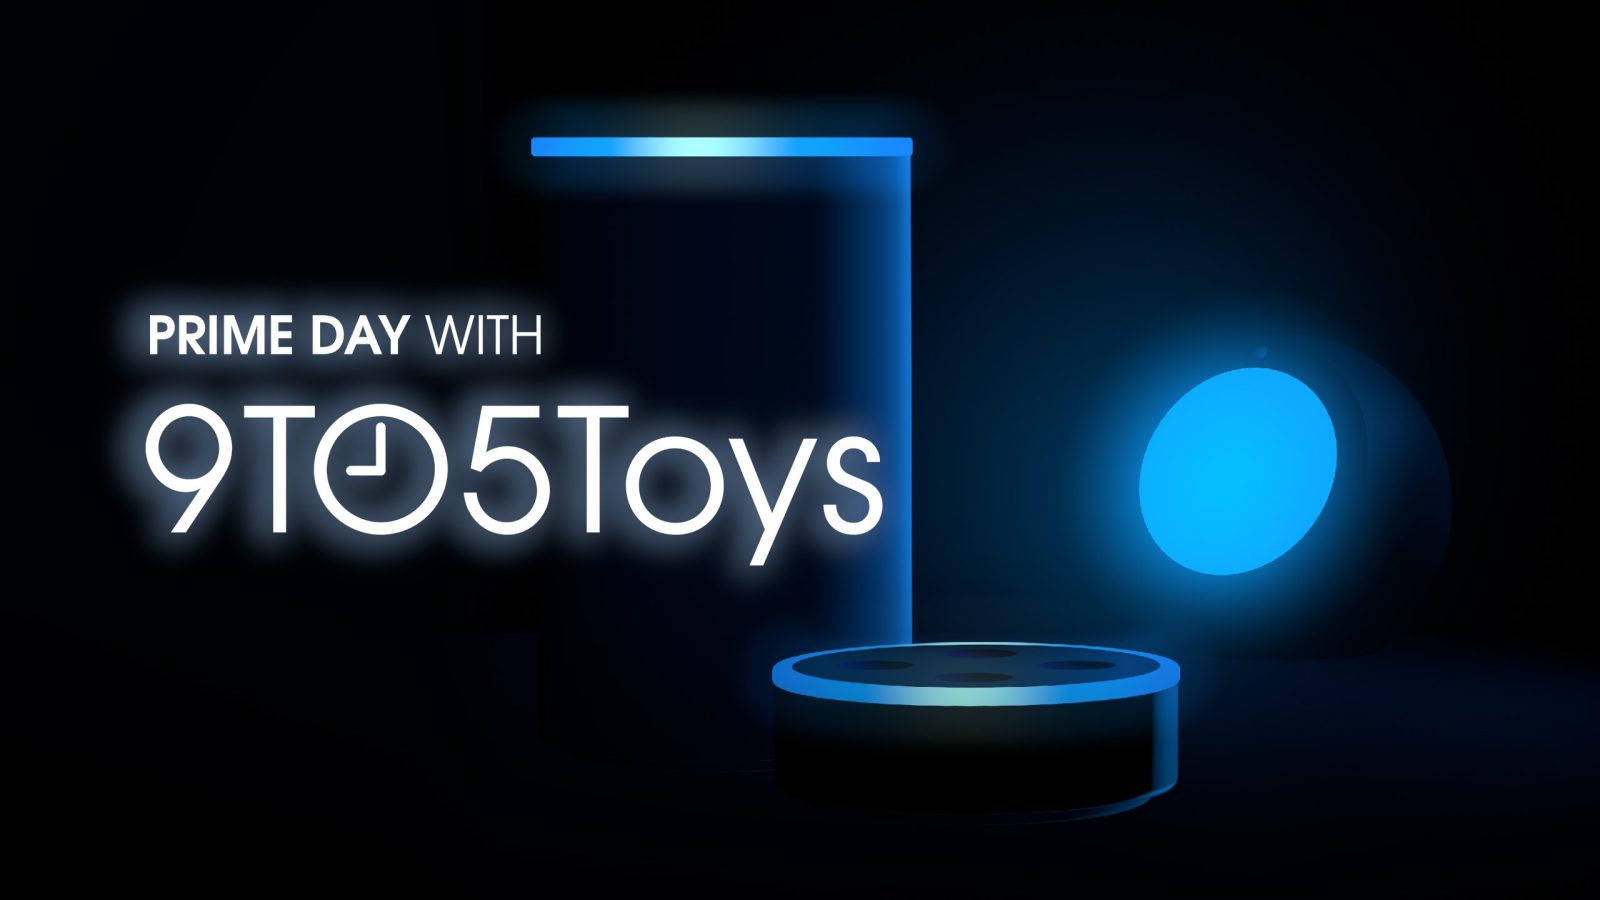 3914e1492111e Best Prime Day Deals: Android & Assistant tech, TVs, more - 9to5Google